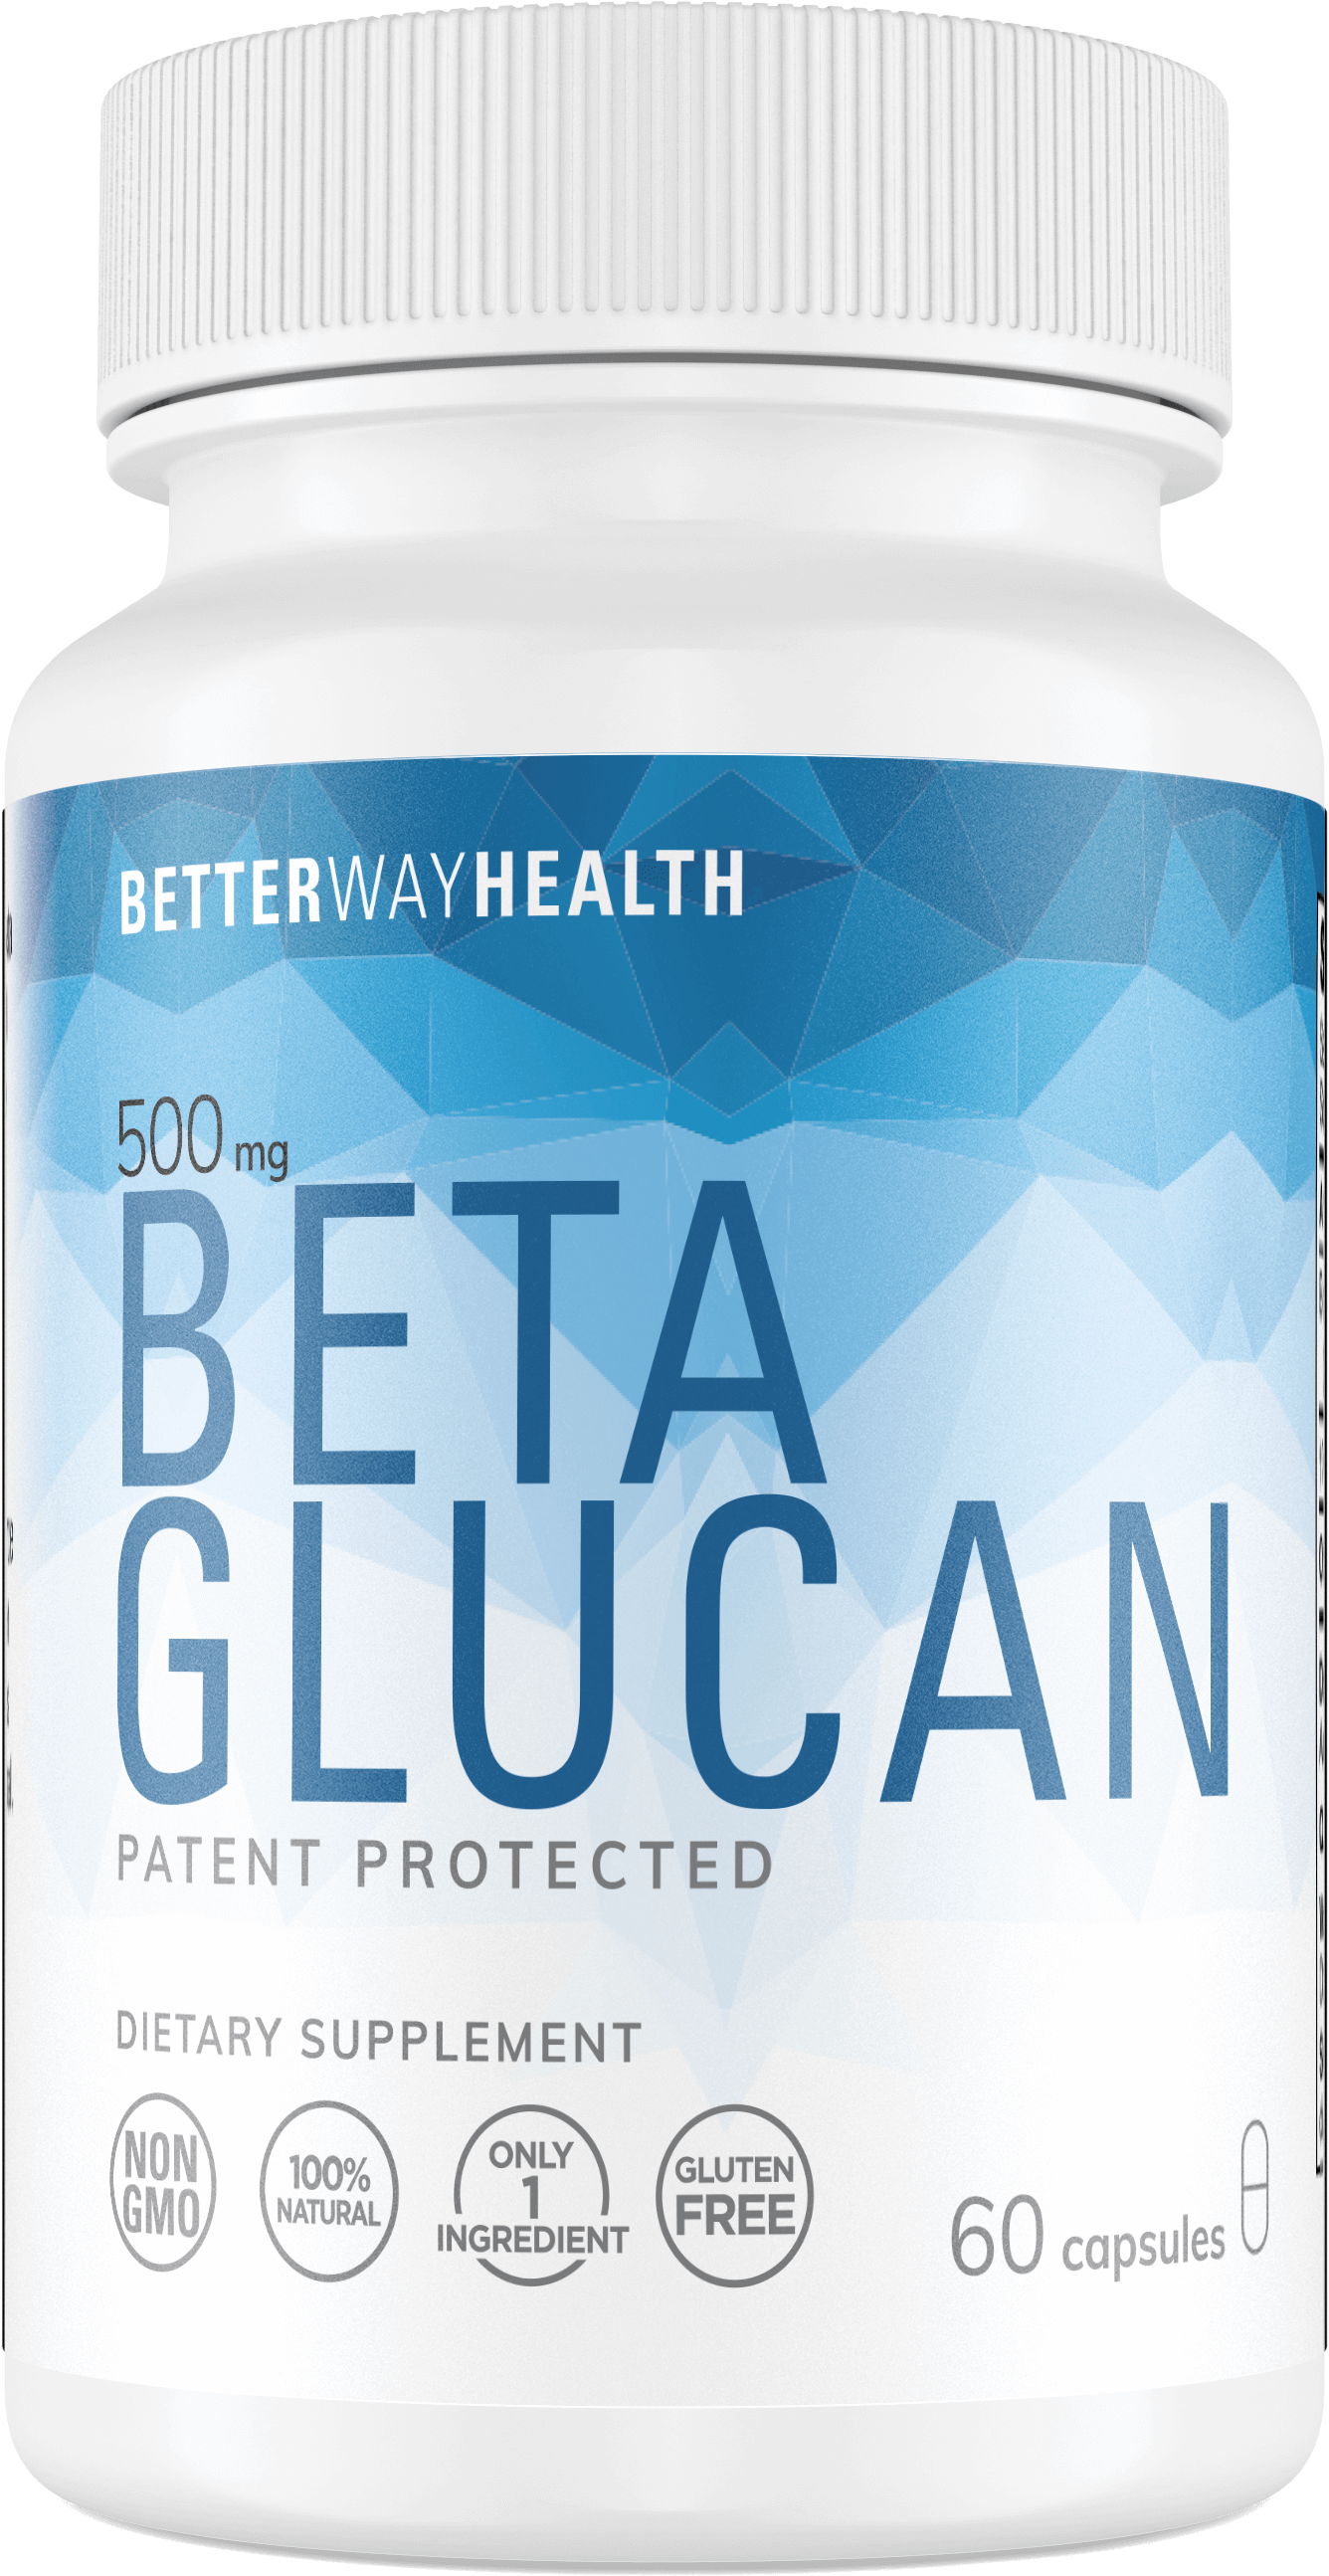 Single Better Way Health Beta Glucan 60 capsule bottle